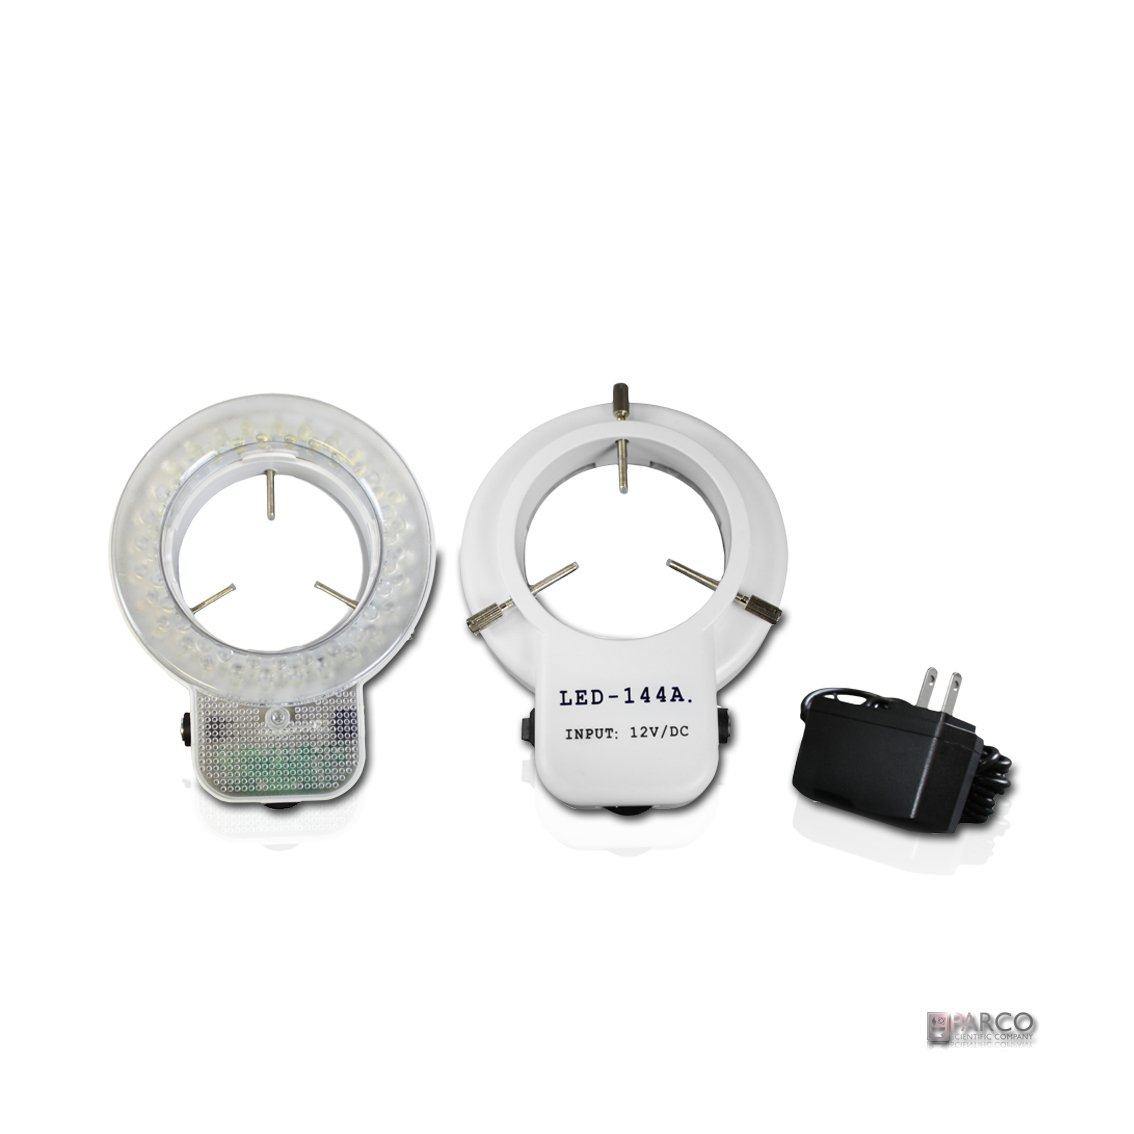 Parco Scientific PMLIFR-07 144-LED Ring Light with Intensity Control by Parco Scientific